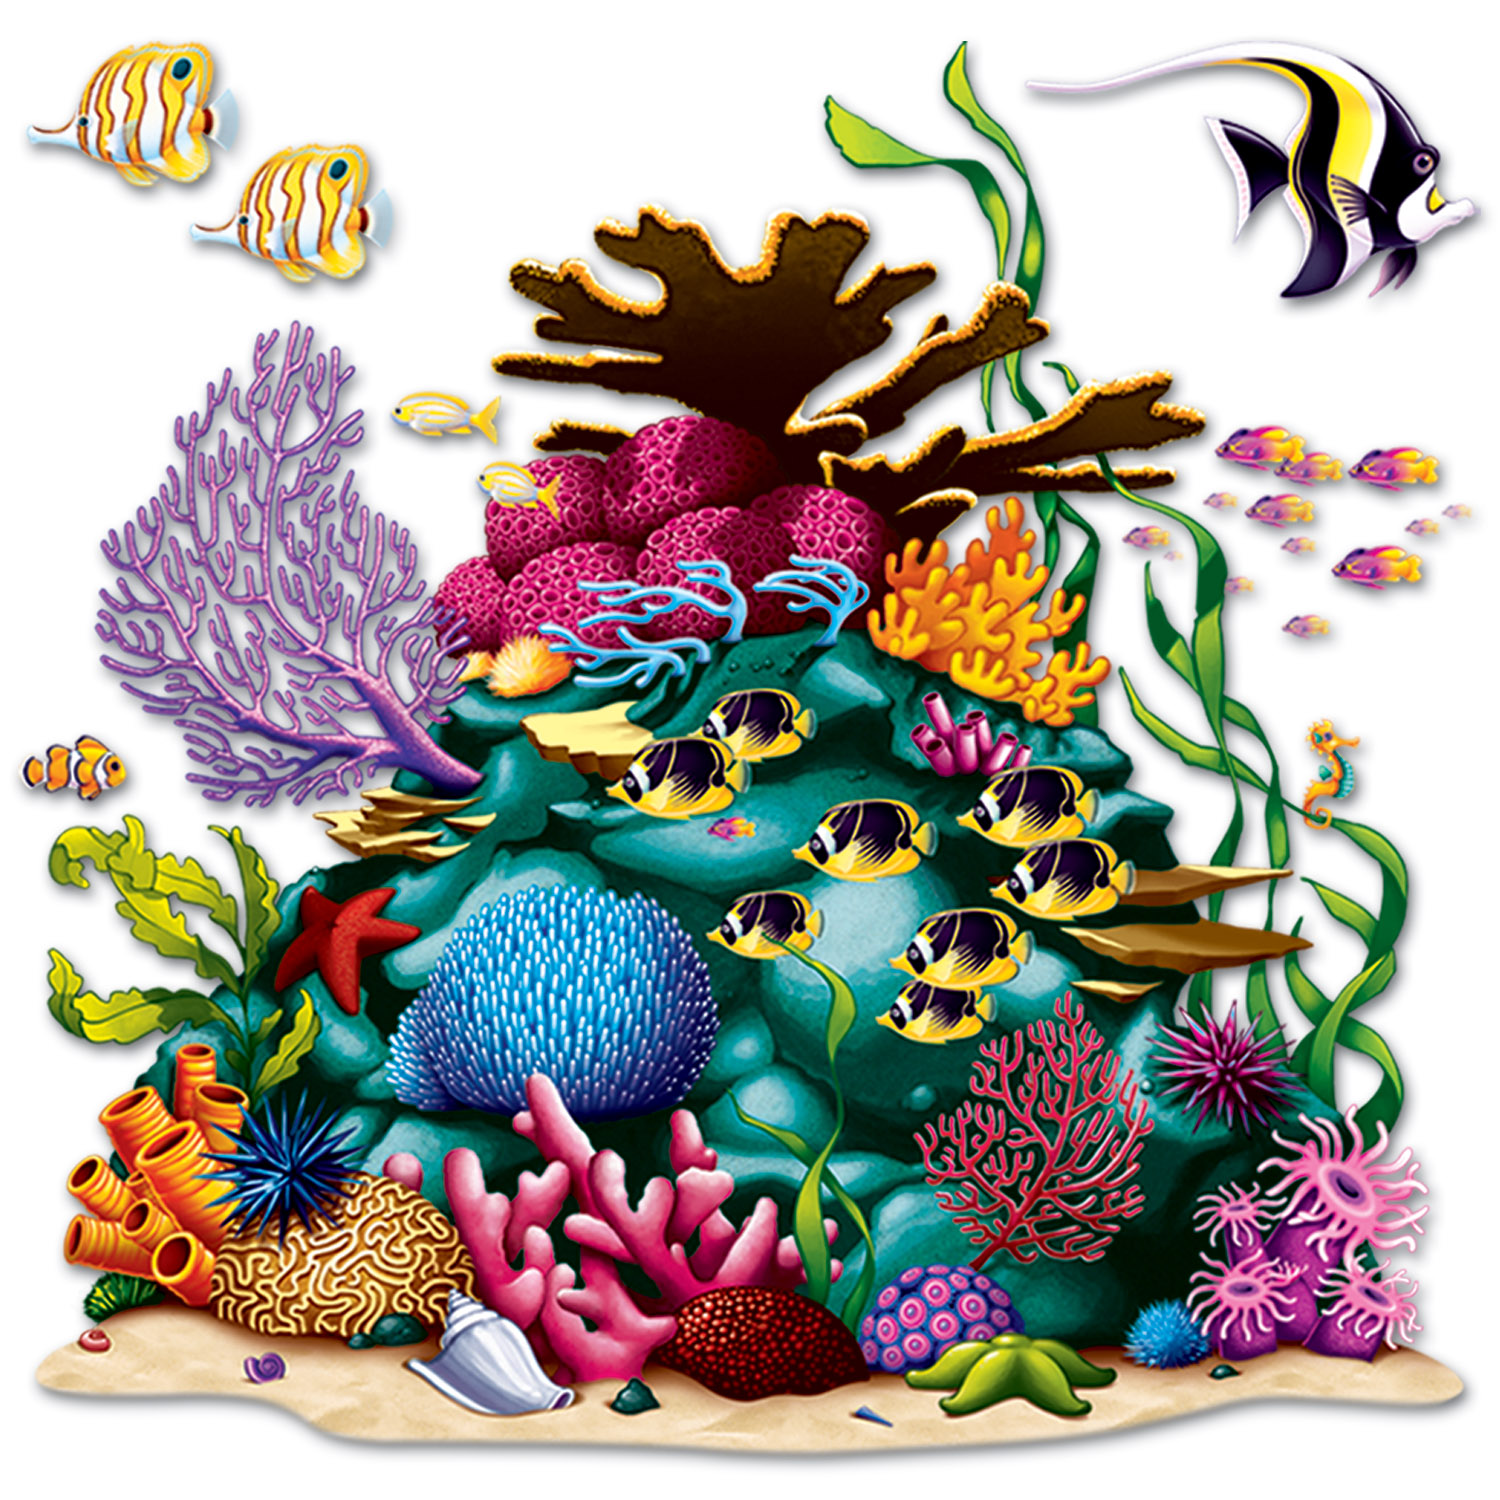 Coral Reef 5 Foot Wall Decor